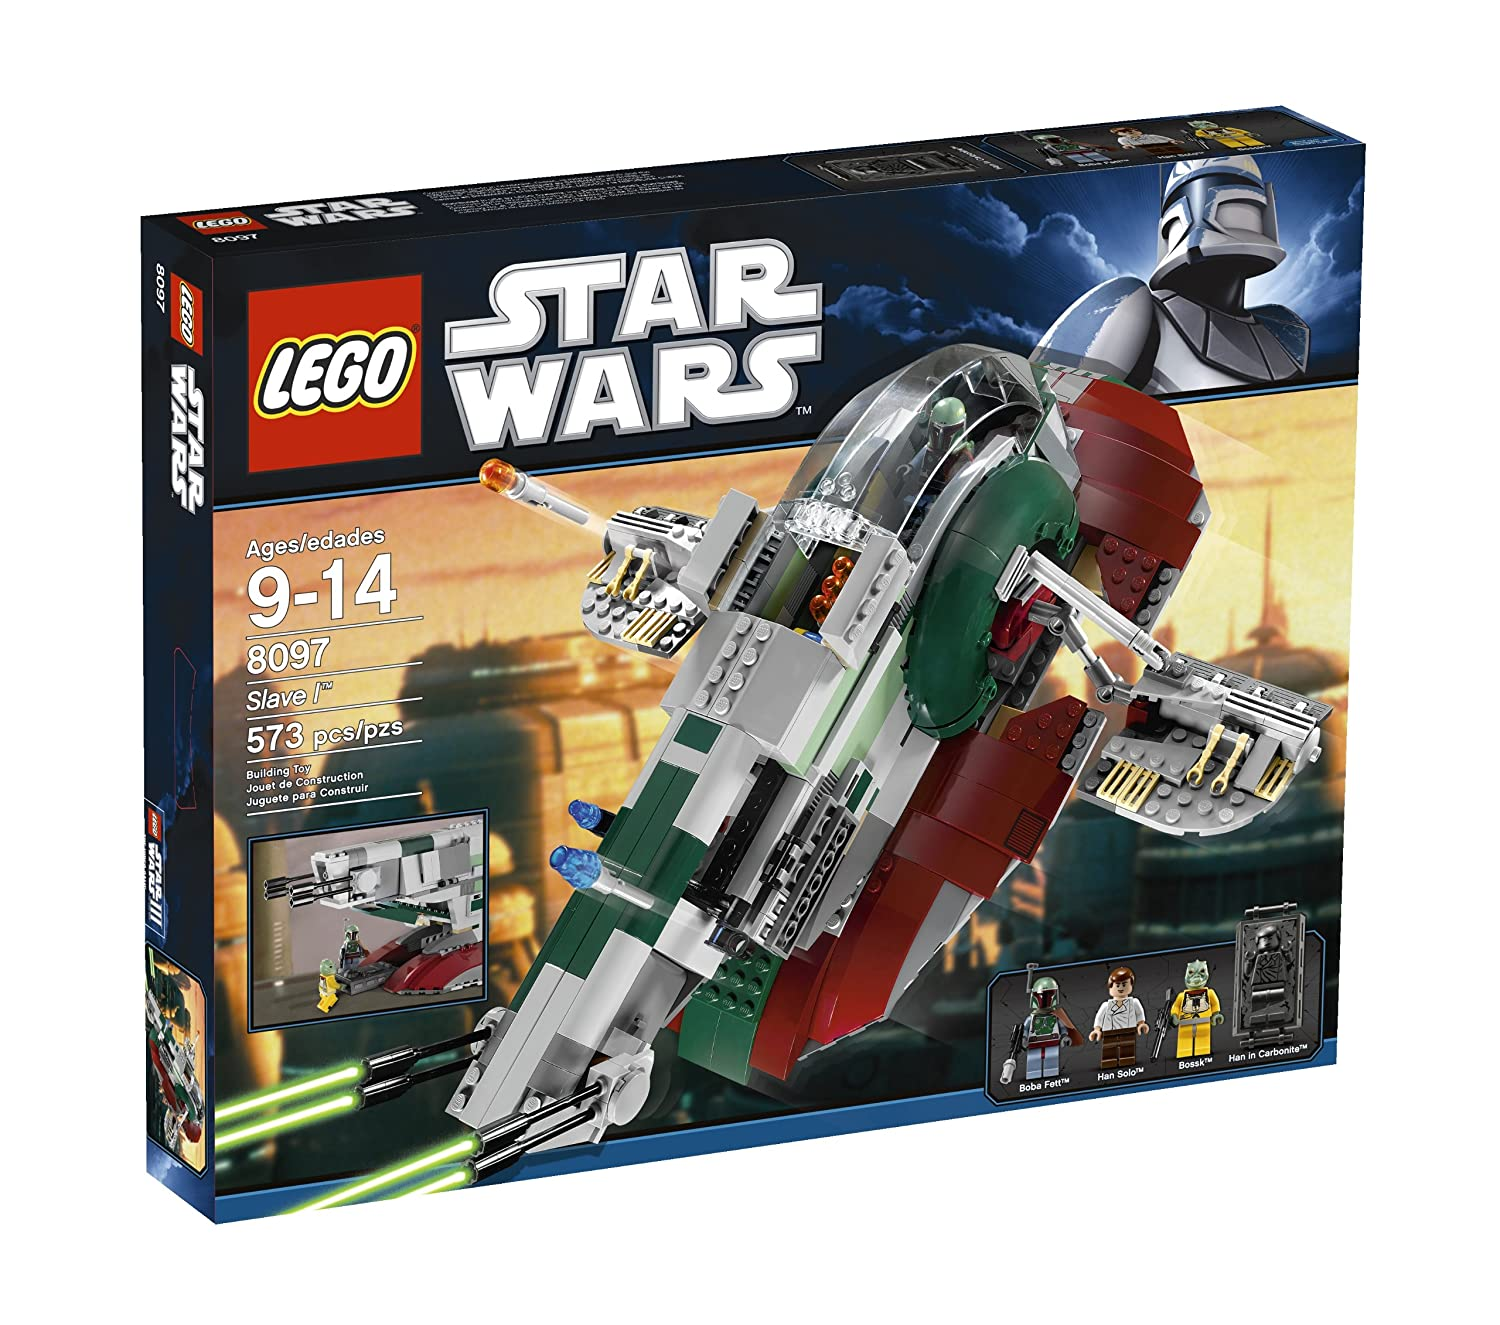 Lego Star Wars Boba Fett Ship